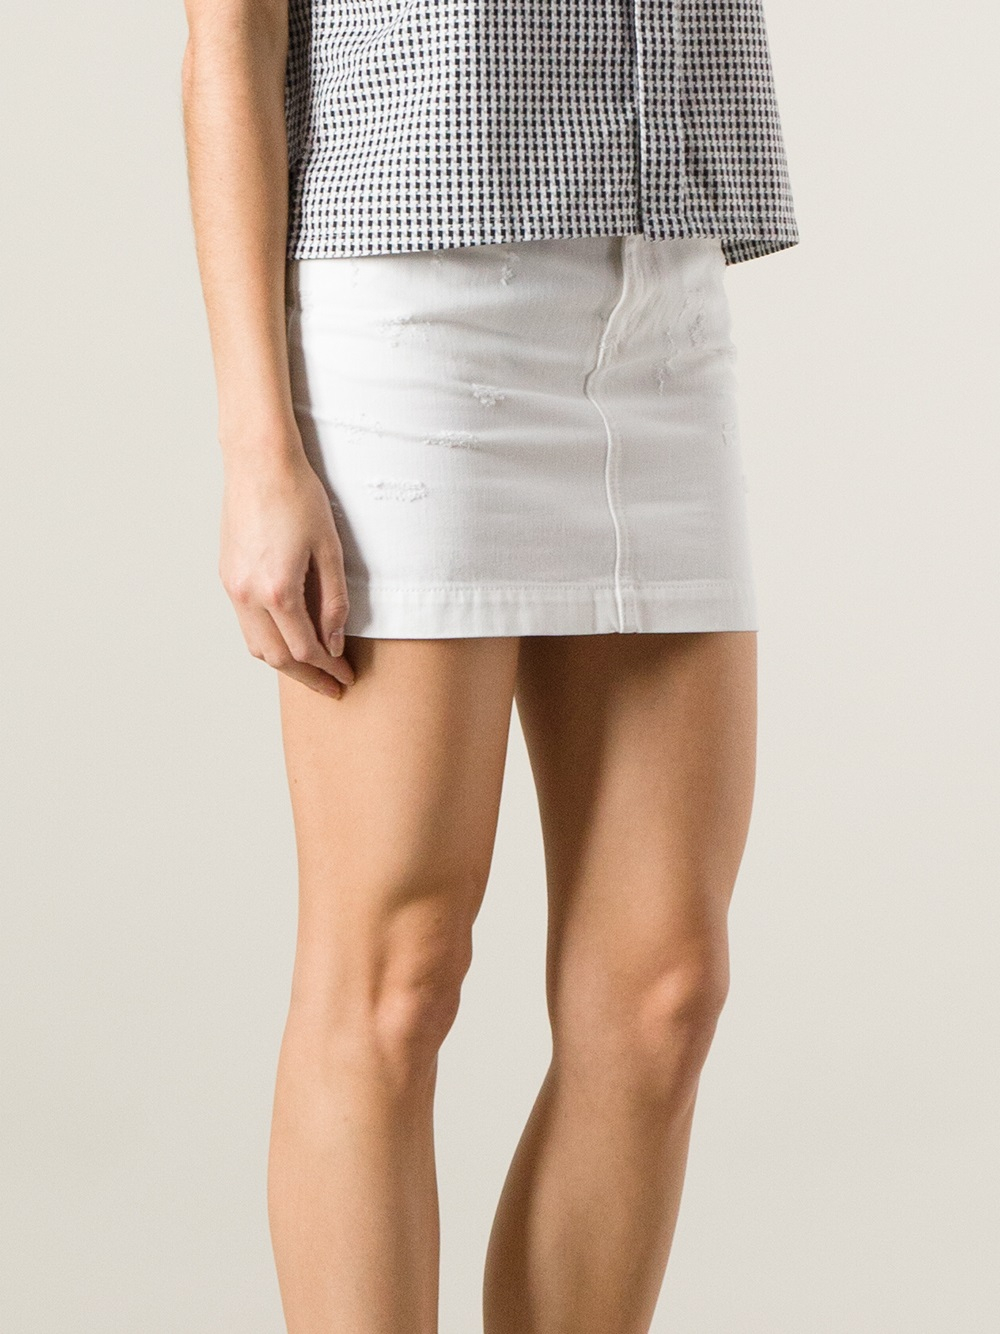 Dolce & gabbana Denim Mini Skirt in White | Lyst